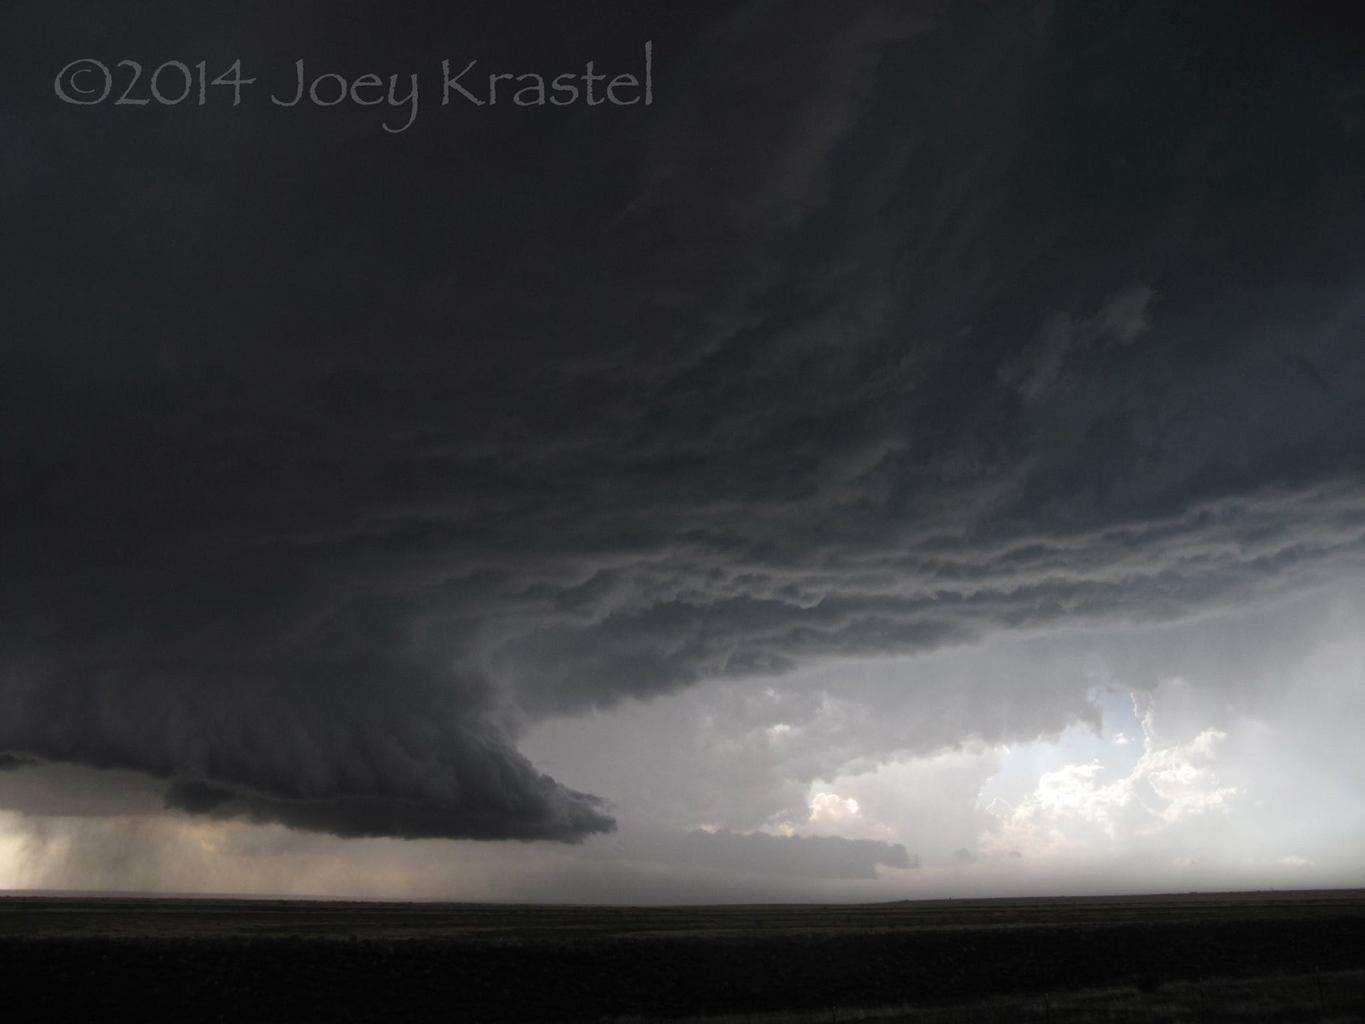 Incredible storm on incredible landscape - Roy, NM June 6, 2014